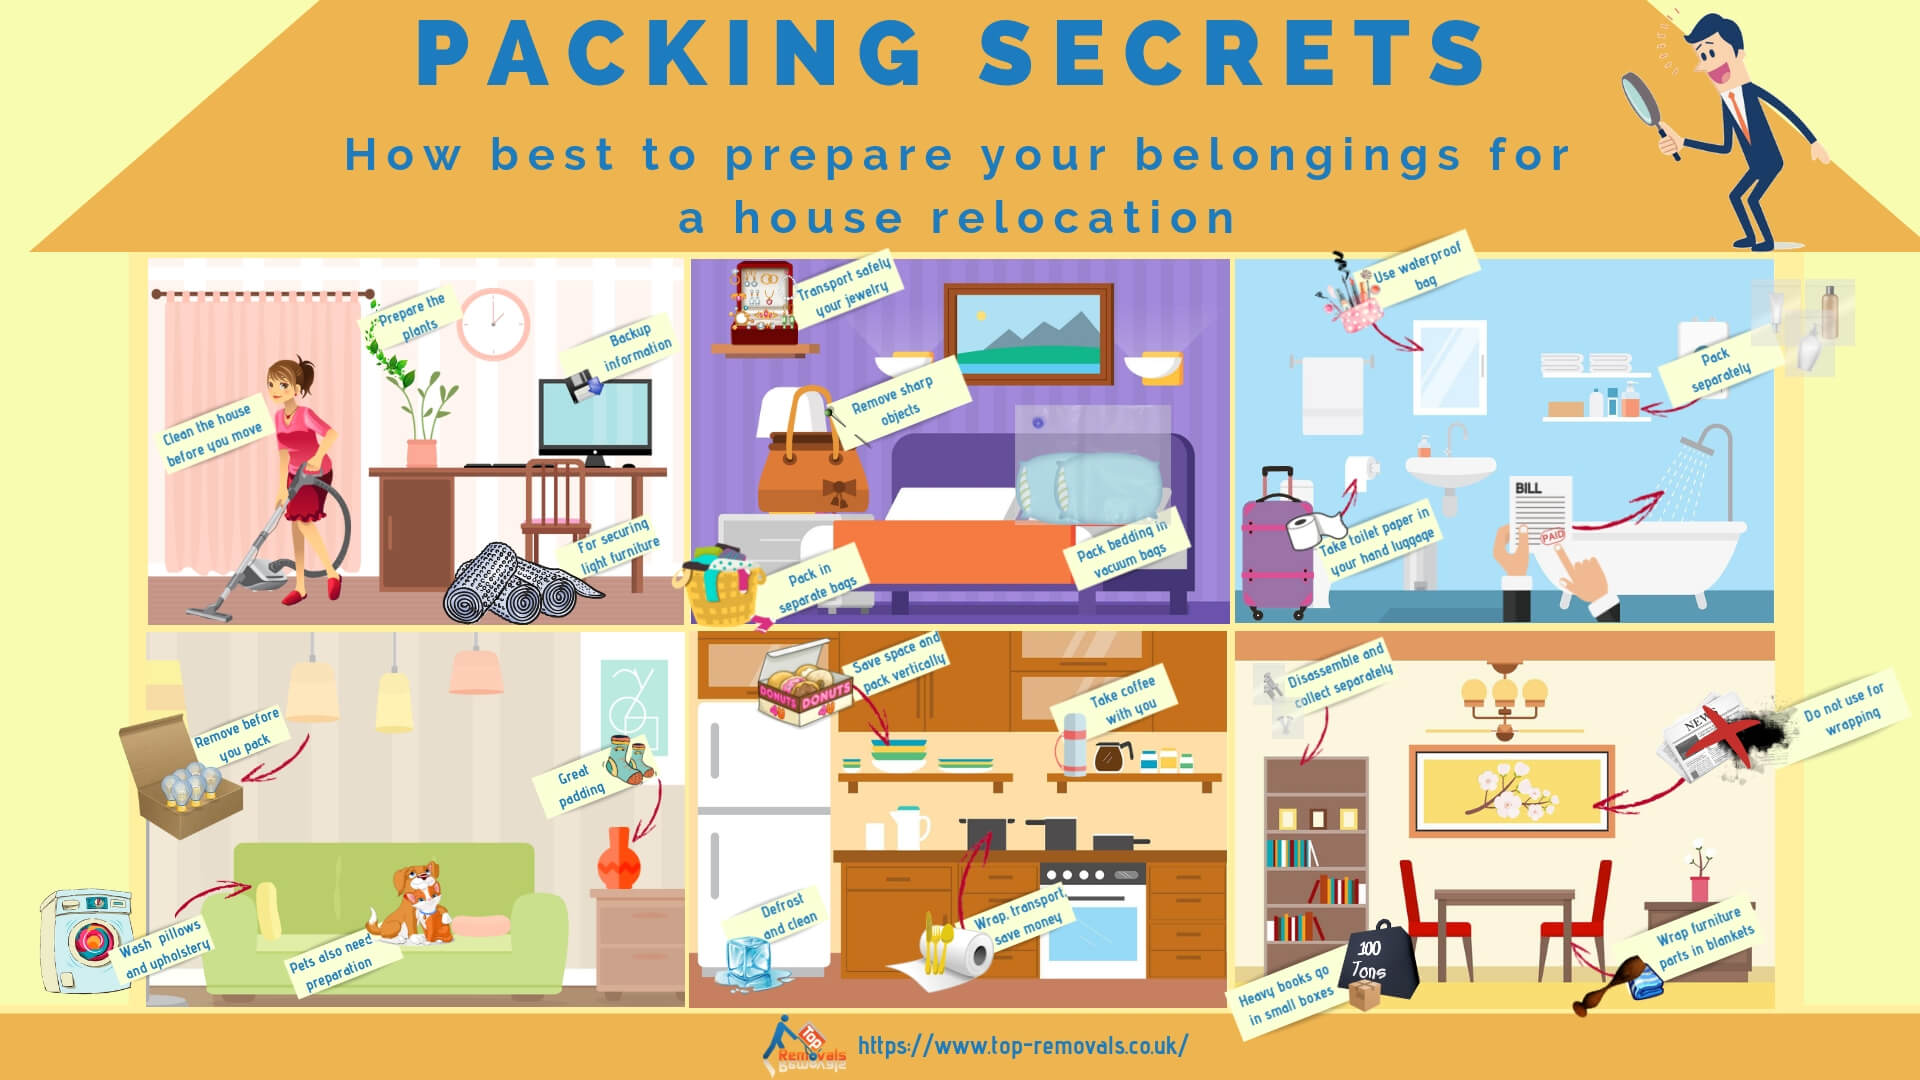 Packing-Secrets-infographic-plaza